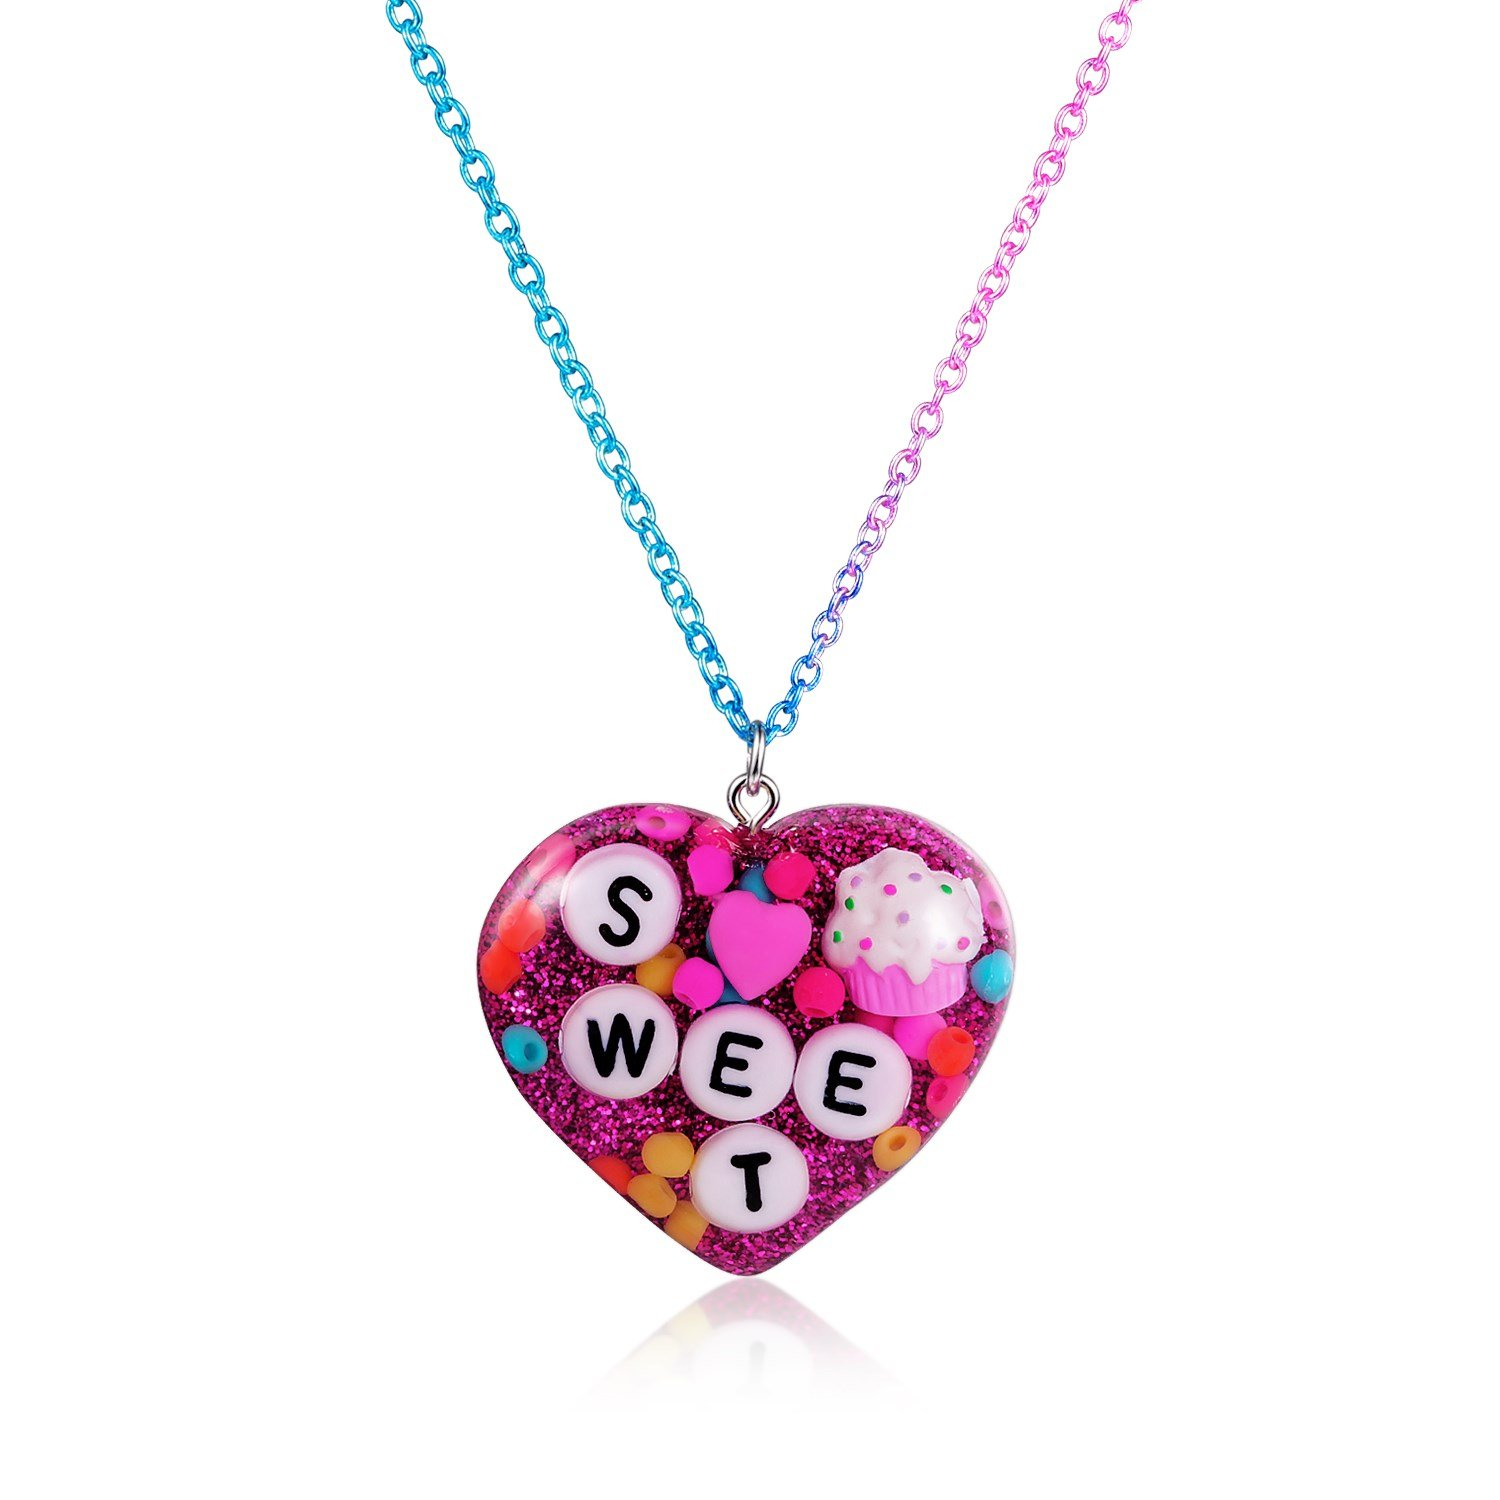 Skywisewin Little Girls Jewelry Glitter Heart Necklace for Kids 02skywisewin